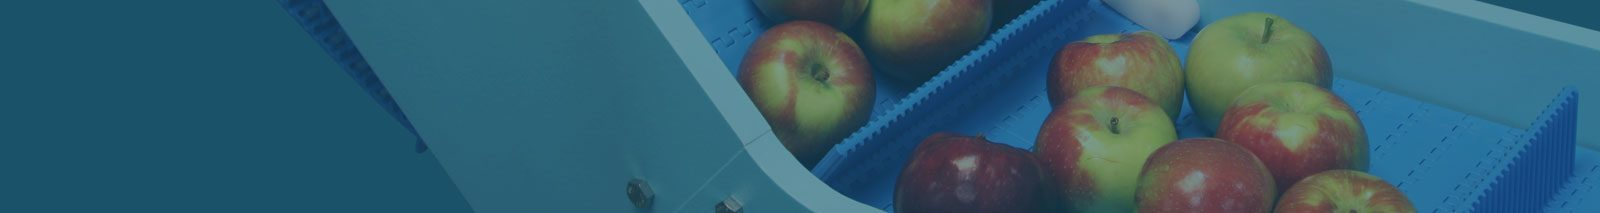 DynaClean foood conveyor with apples.